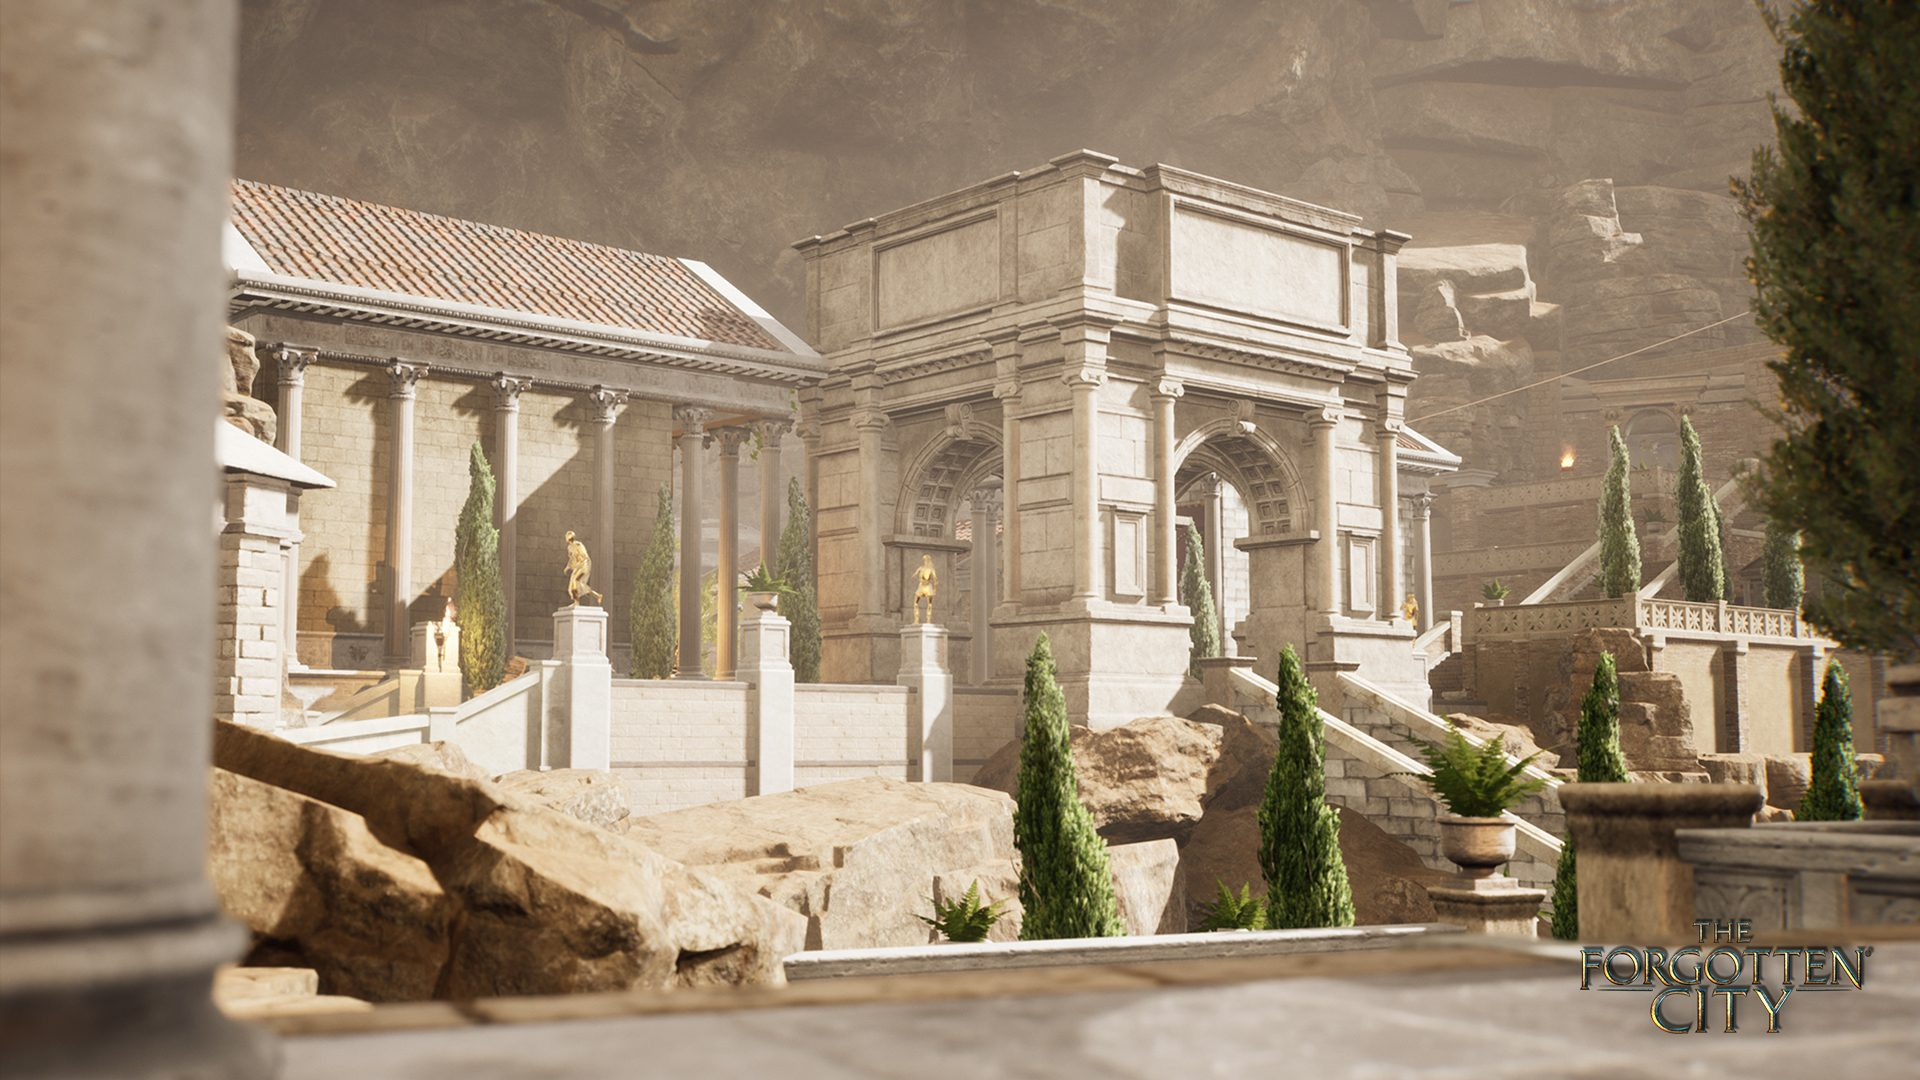 A screenshot from Forgotten City. A marble Roman villa in what appears to be the mid-afternoon sun.